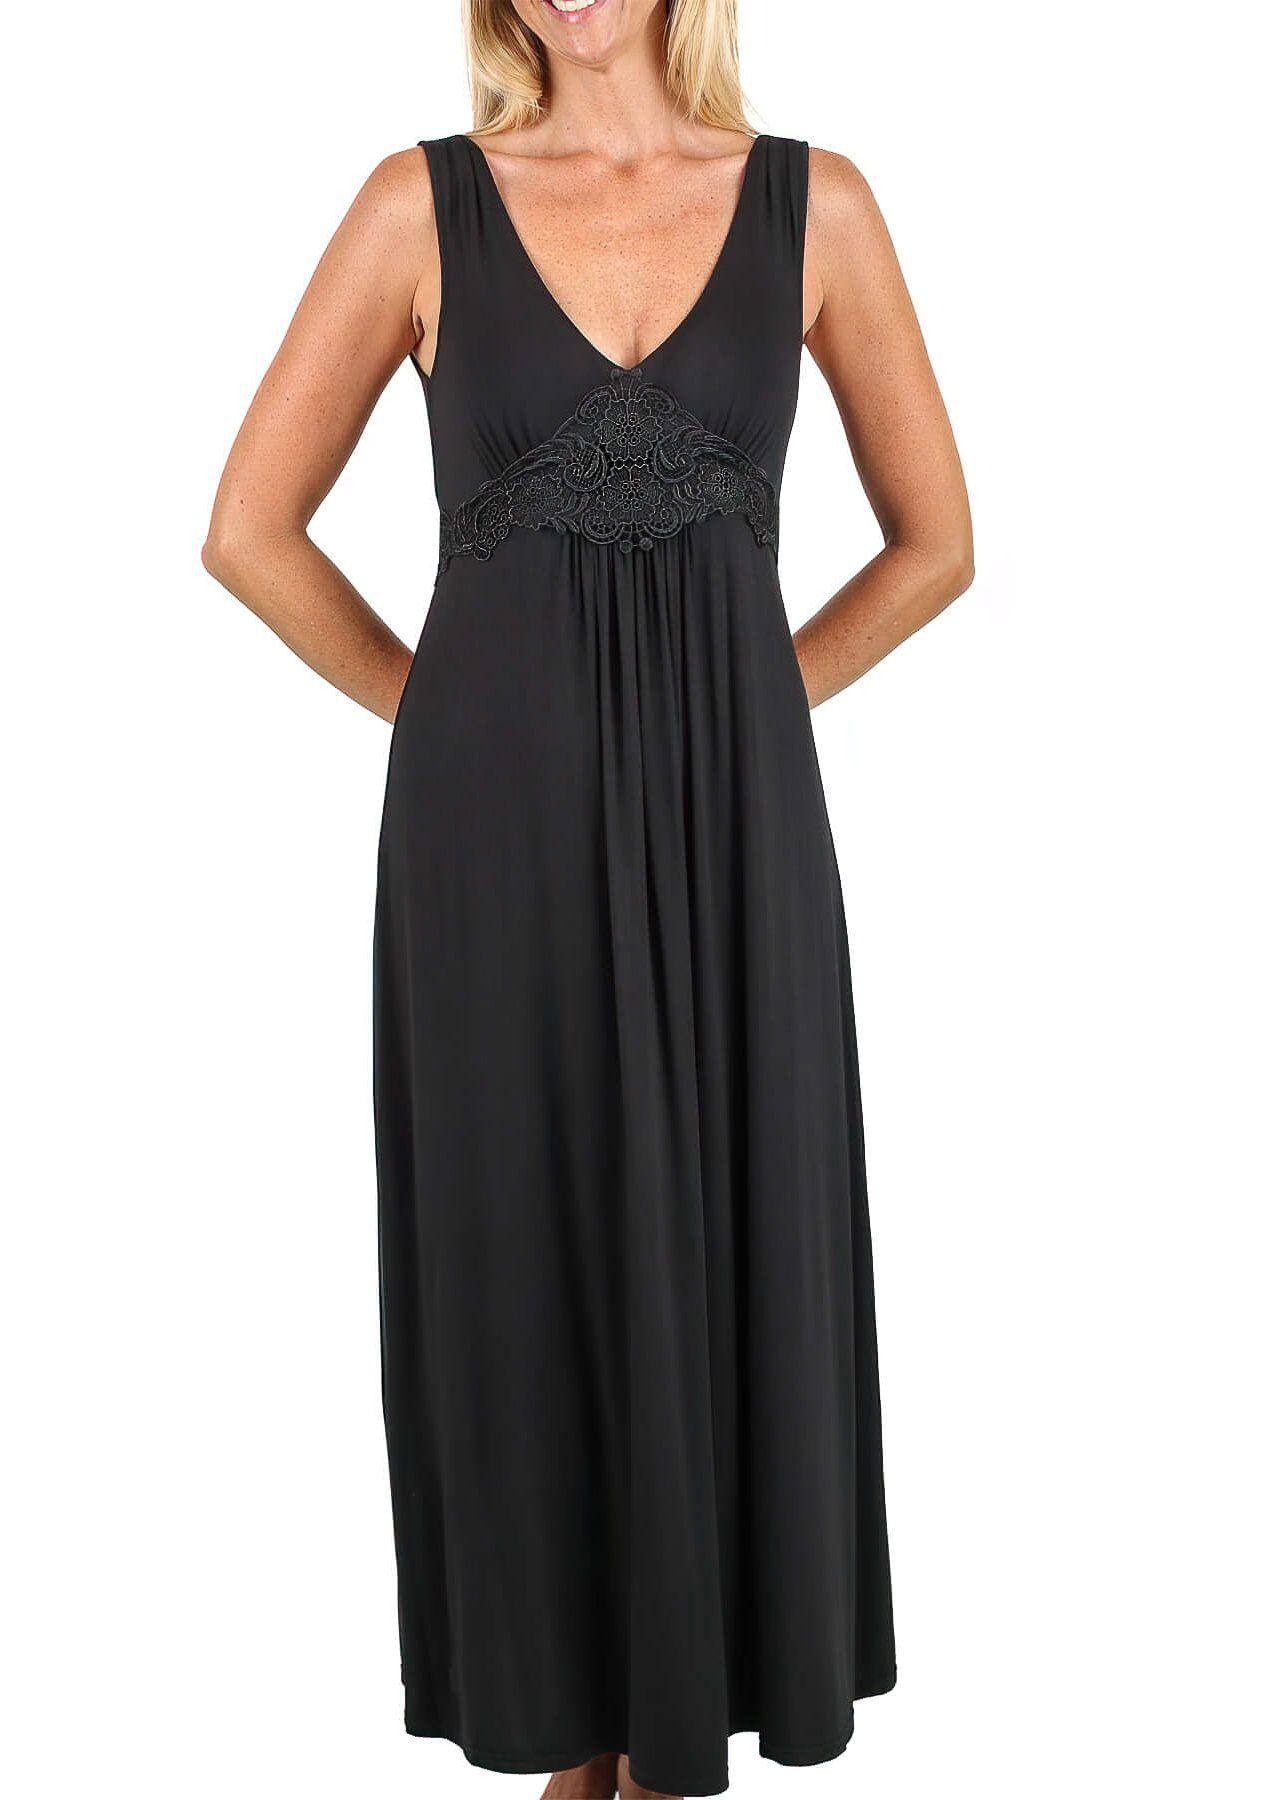 Dreamy Nightgown - Black Mystique Intimates